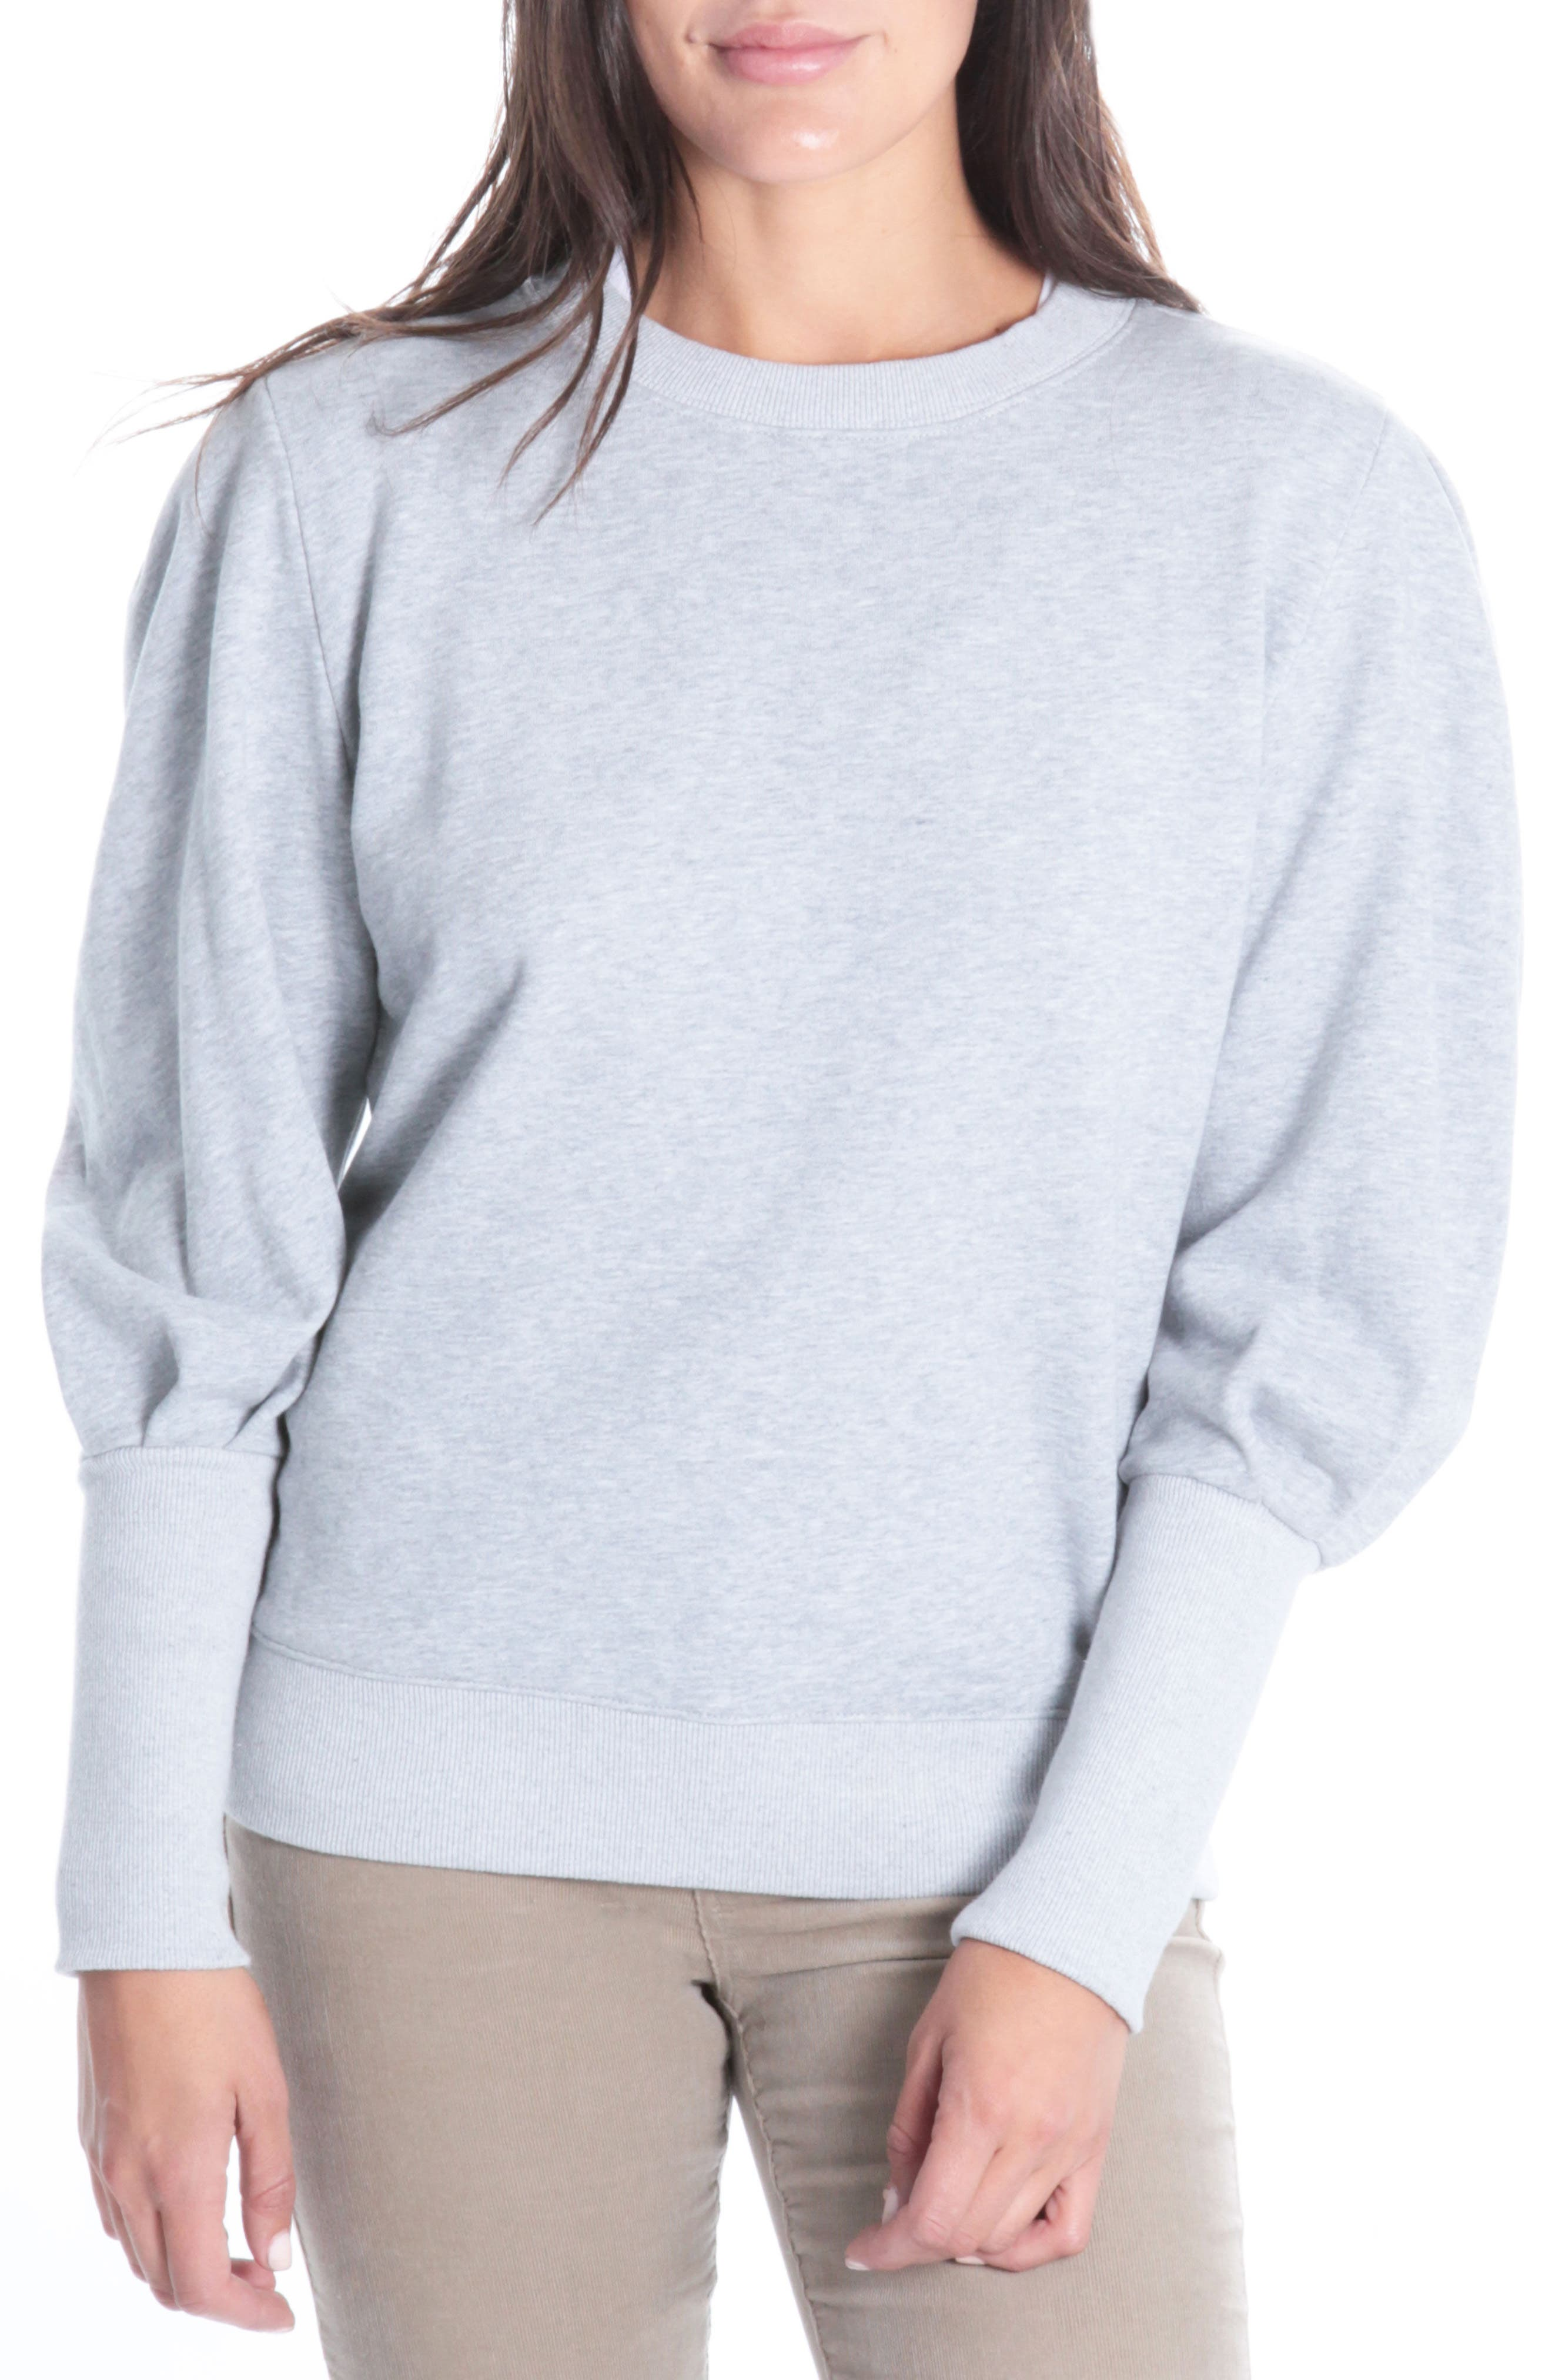 Main Image - Kut from the Kloth Lorena Knit Top